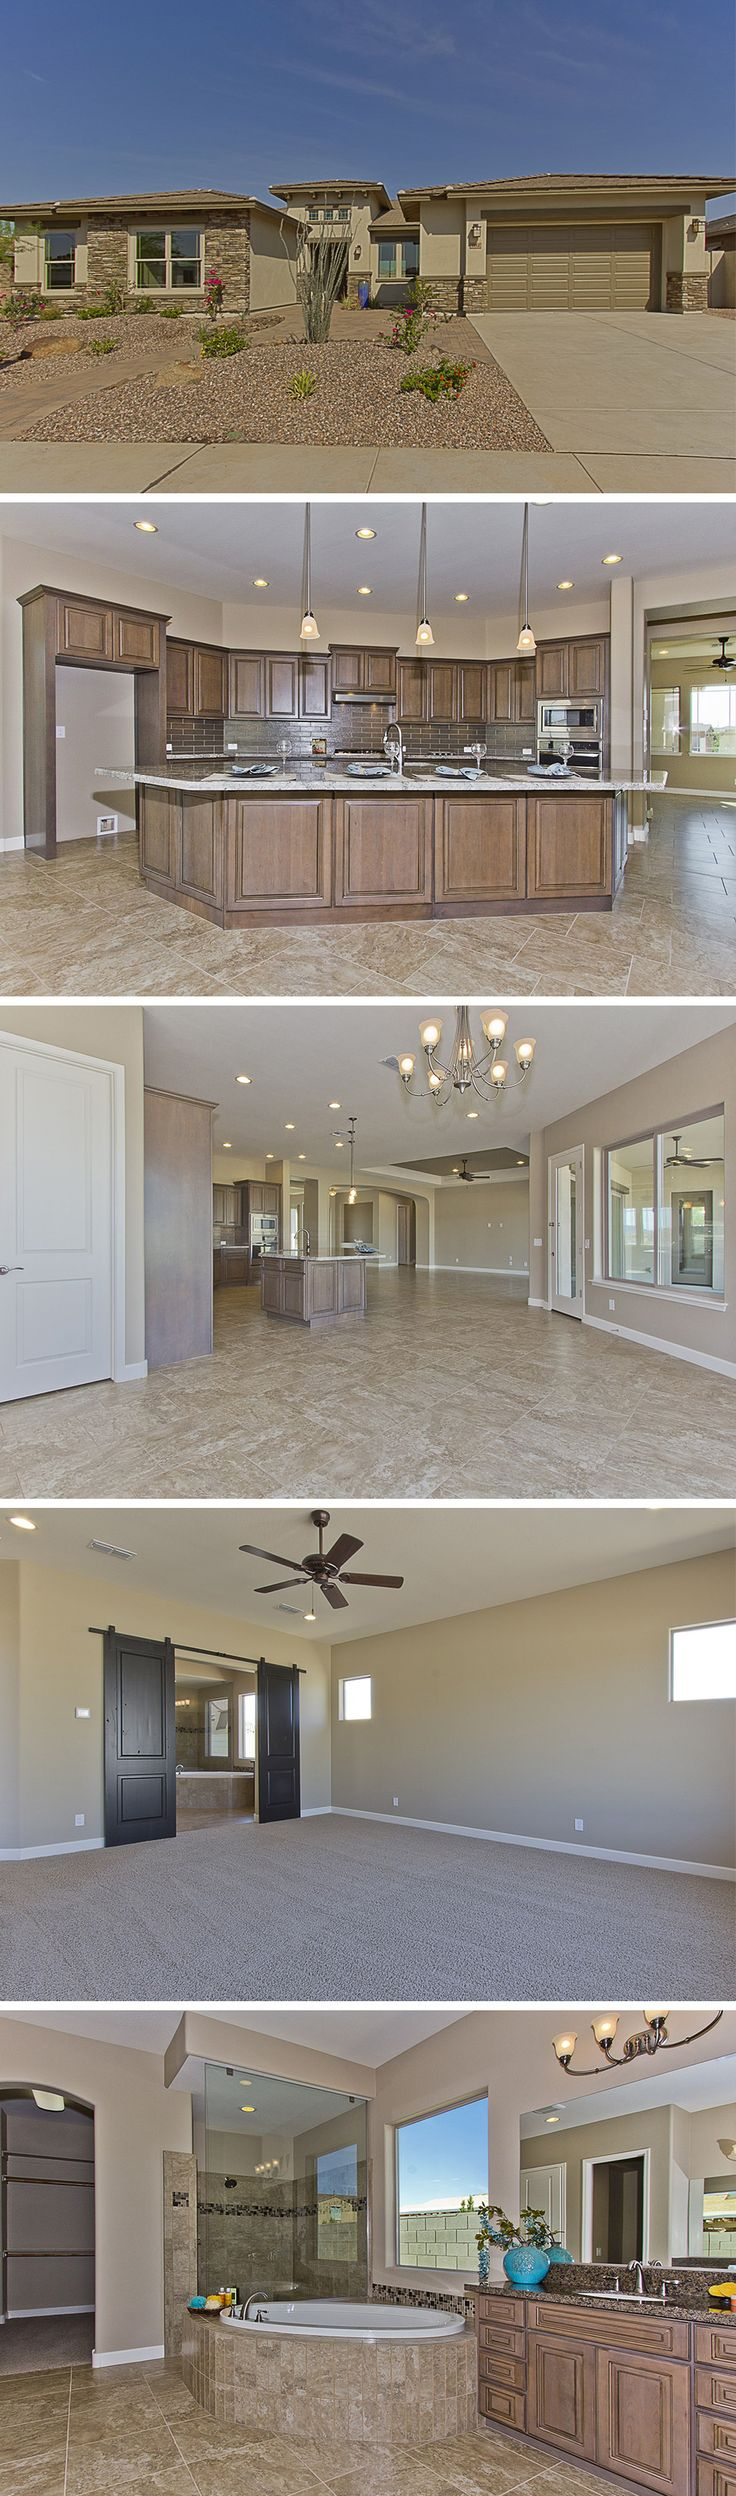 Not your ordinary home! The Yucca is  move-in ready at 5112 S Ponderosa Dr in Gilbert, AZ!